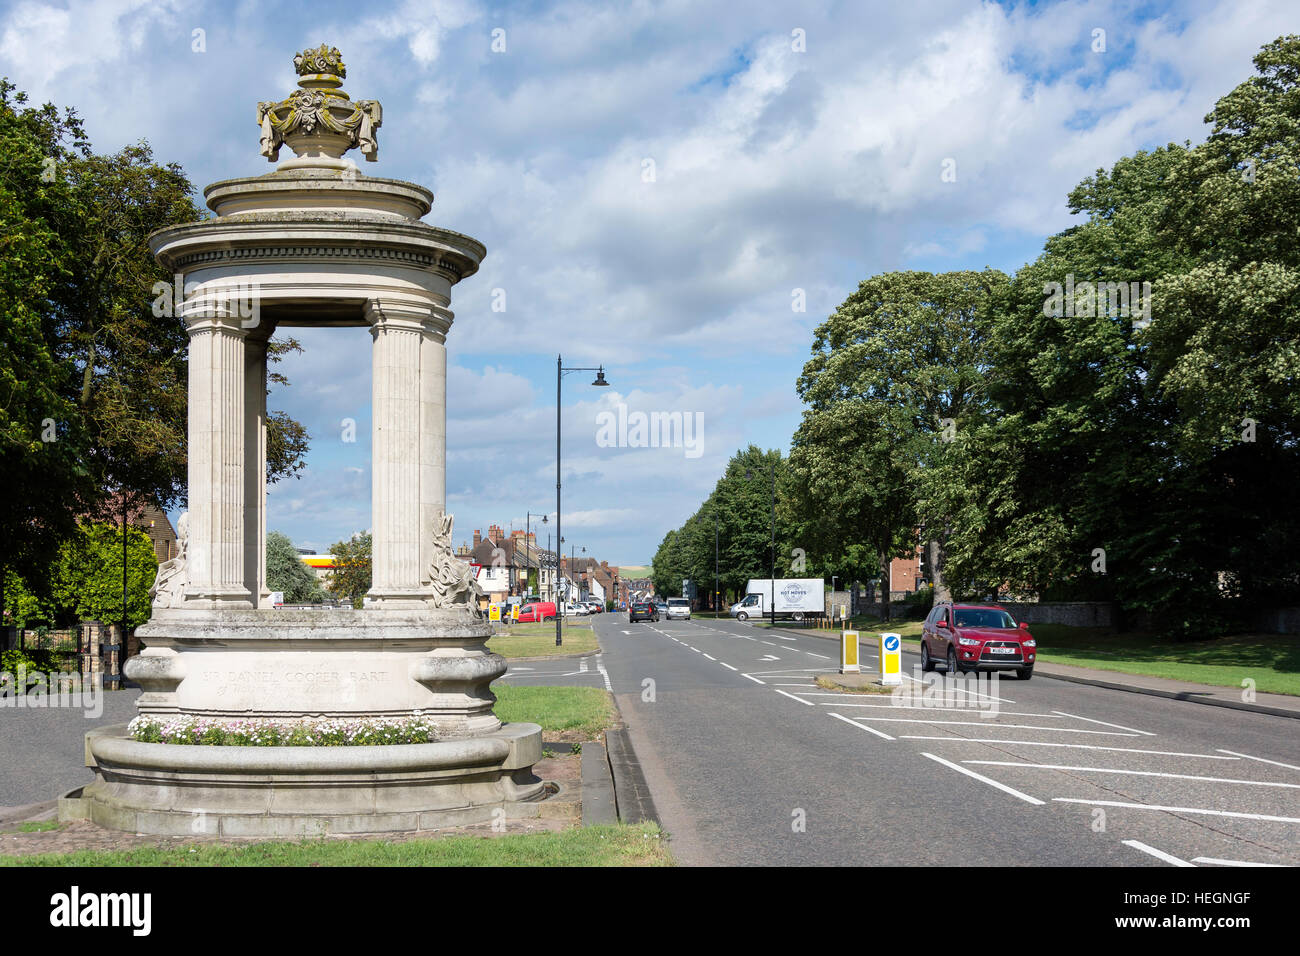 Sir Daniel Cooper Bart Fountain at entrance to High Street, Newmarket, Suffolk, England, United Kingdom - Stock Image